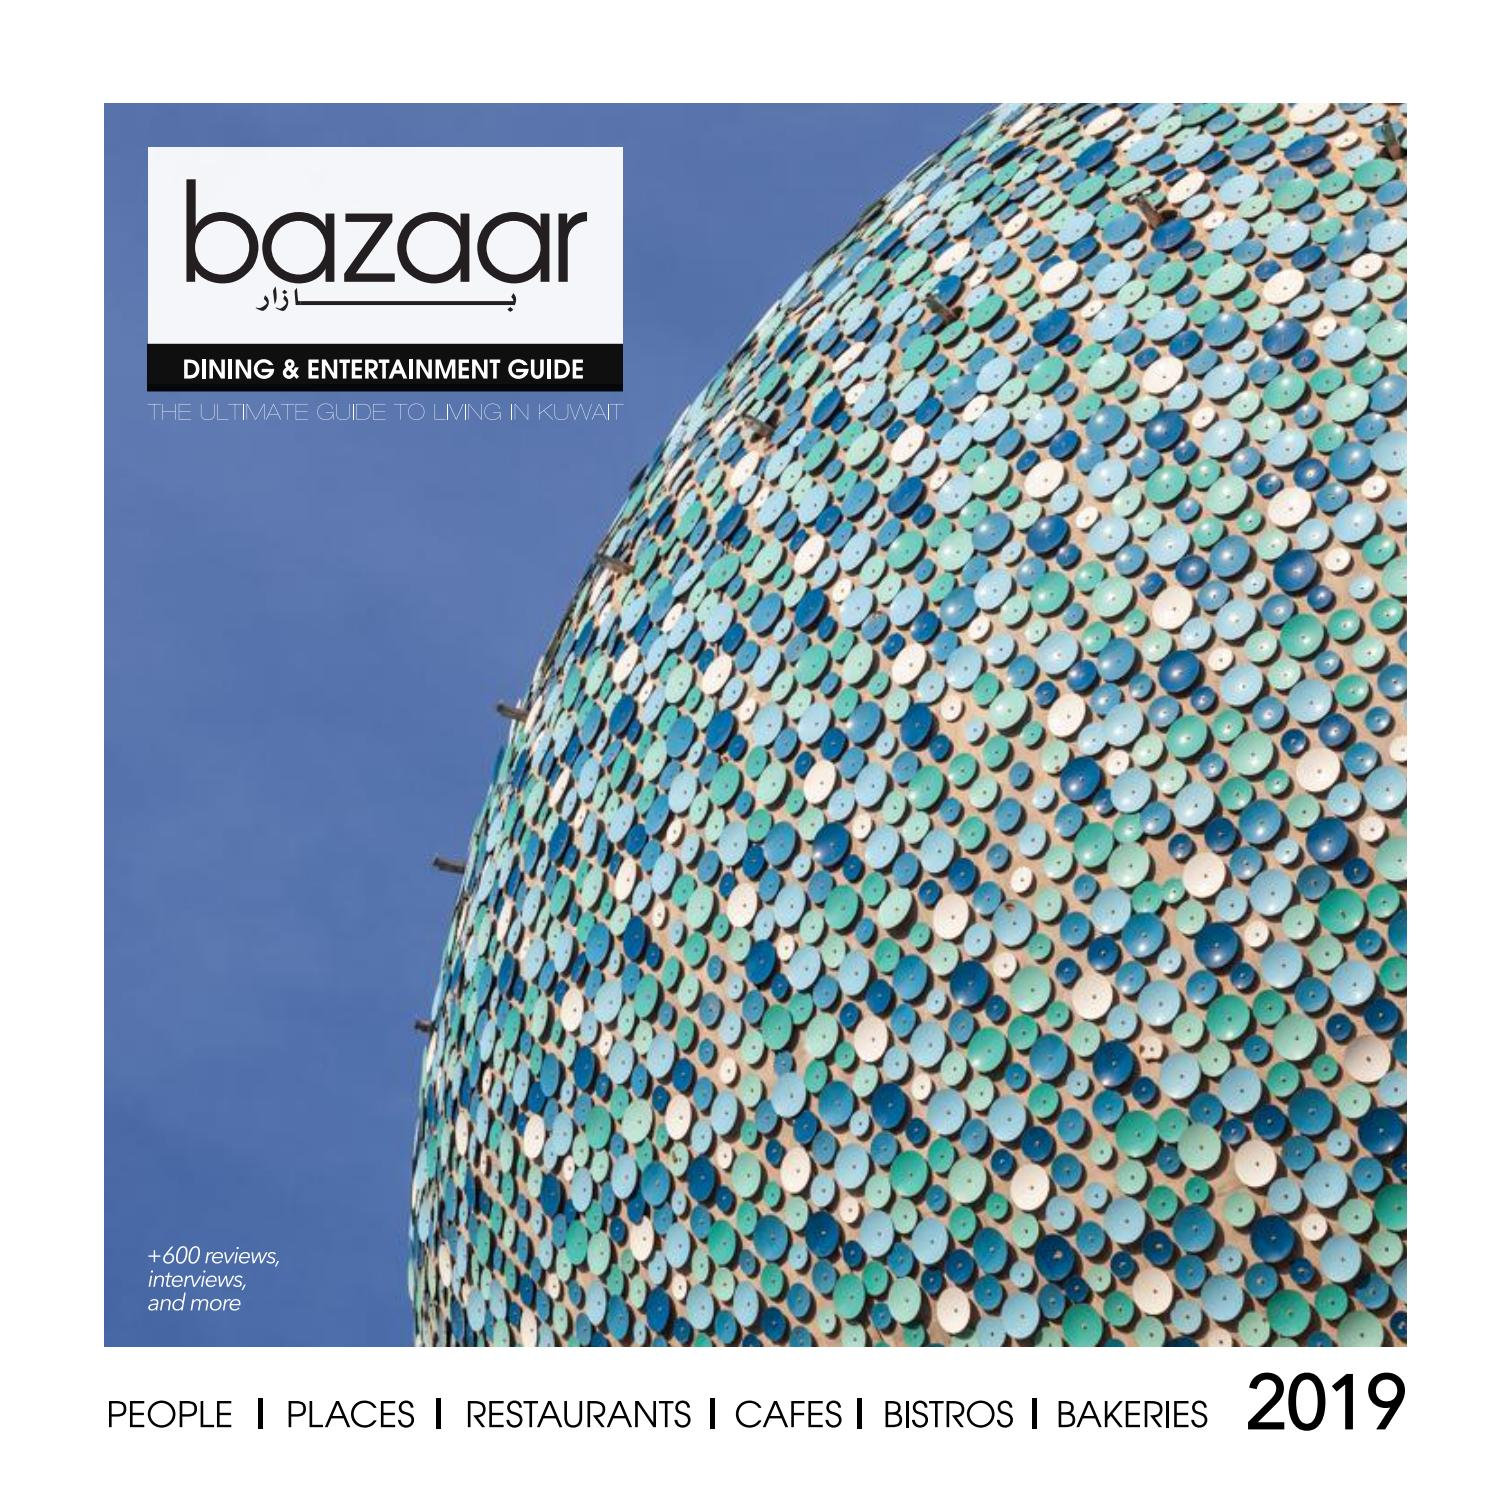 Cucina Fresca Meaning 2019 Bazaar Dining And Entertainment Guide By Bazaar Magazine Issuu